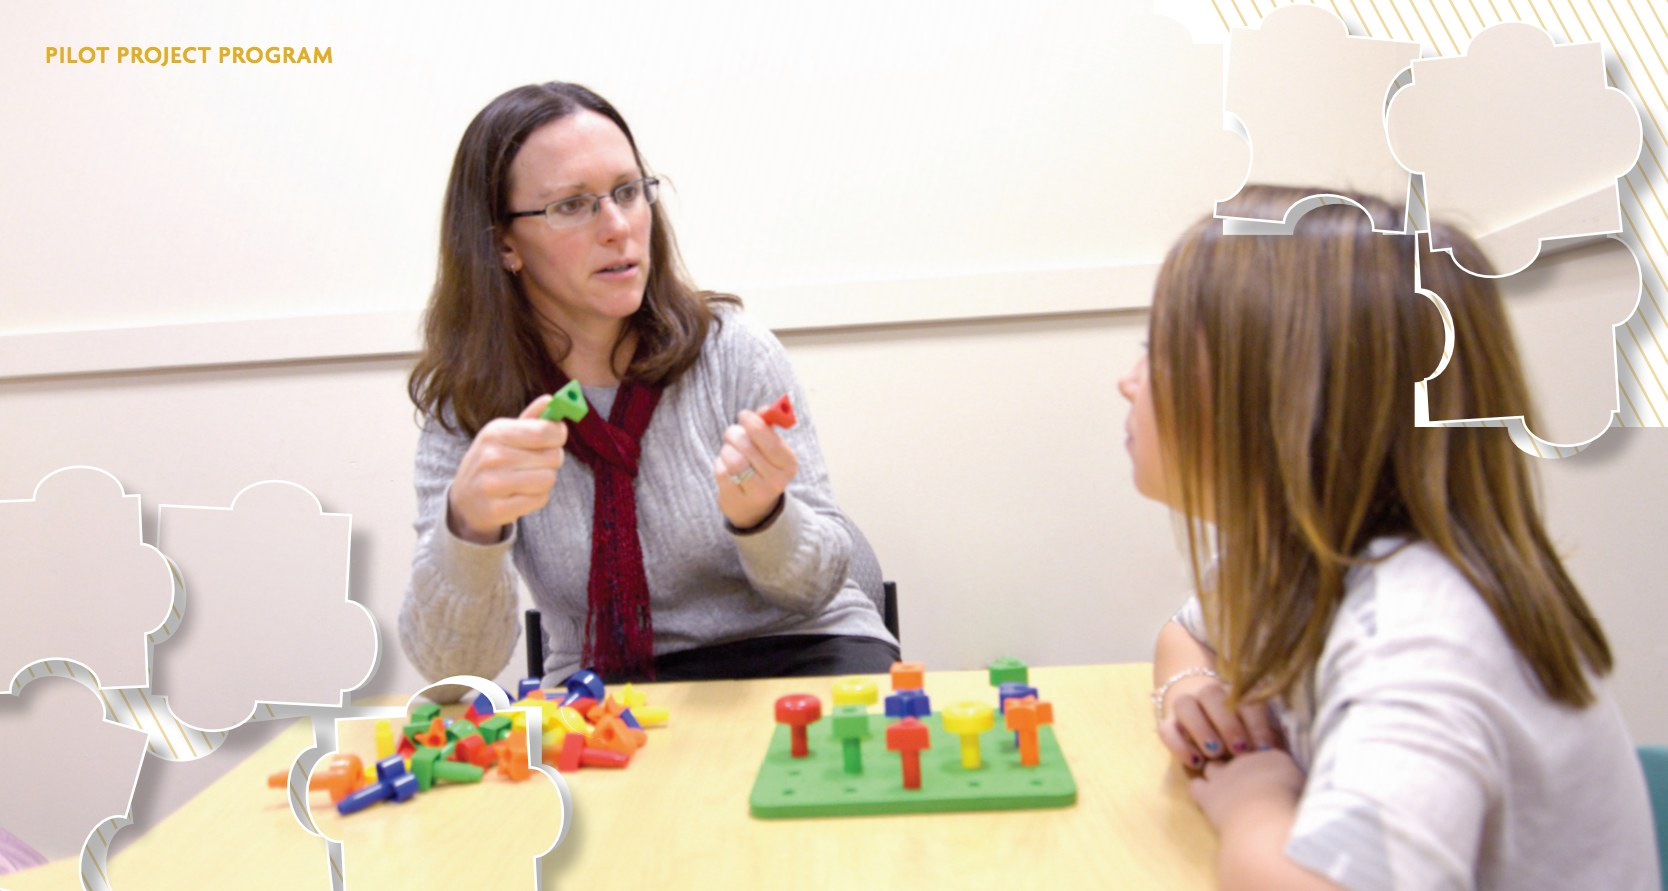 Dr. Pamela Ventola hopes her WHRY-funded study will lead researchers and behavioral therapists to treat girls and boys with autism differently from one another.